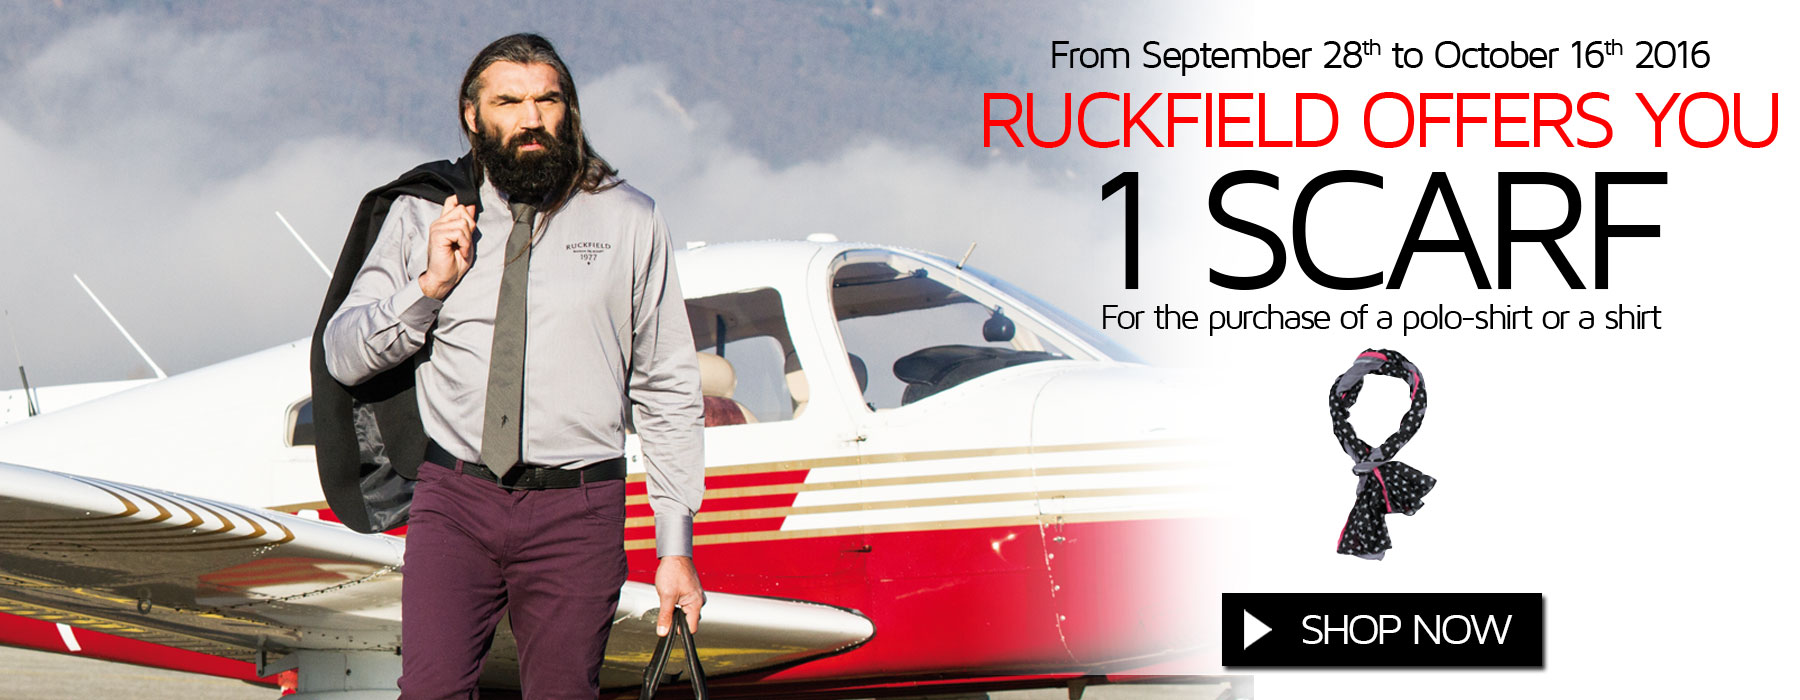 Ruckfiled and Sebastien Chabal offer you a scarf for the purchase of a rugby polo-shirt or a shirt